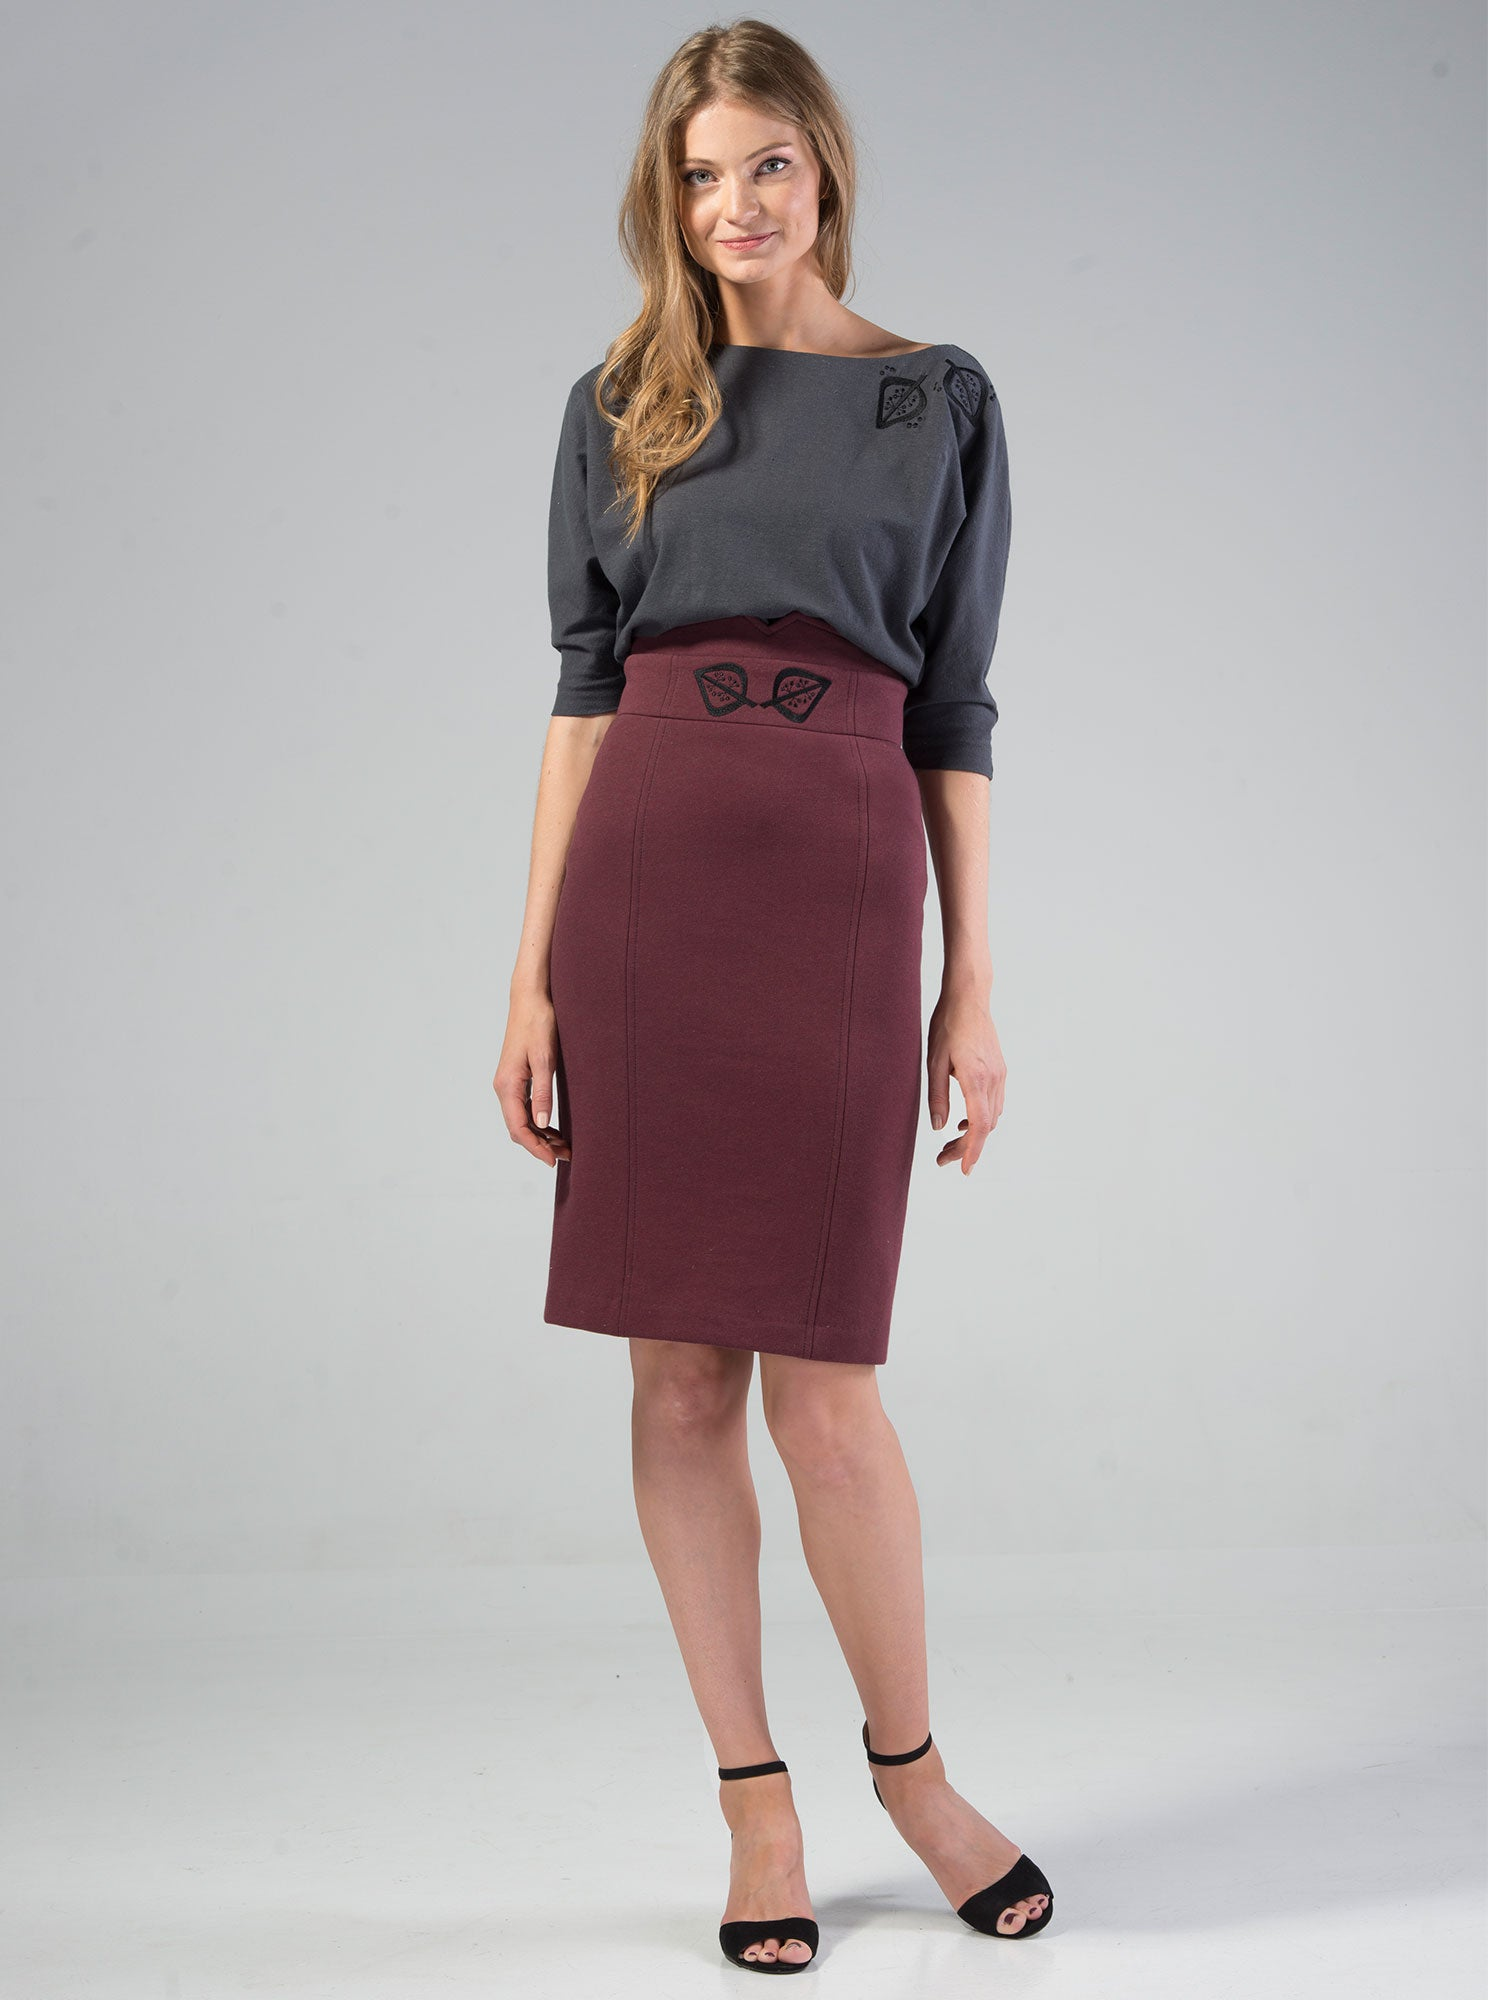 VAIKE Organic Cotton Embroidered Skirt - Bordeaux